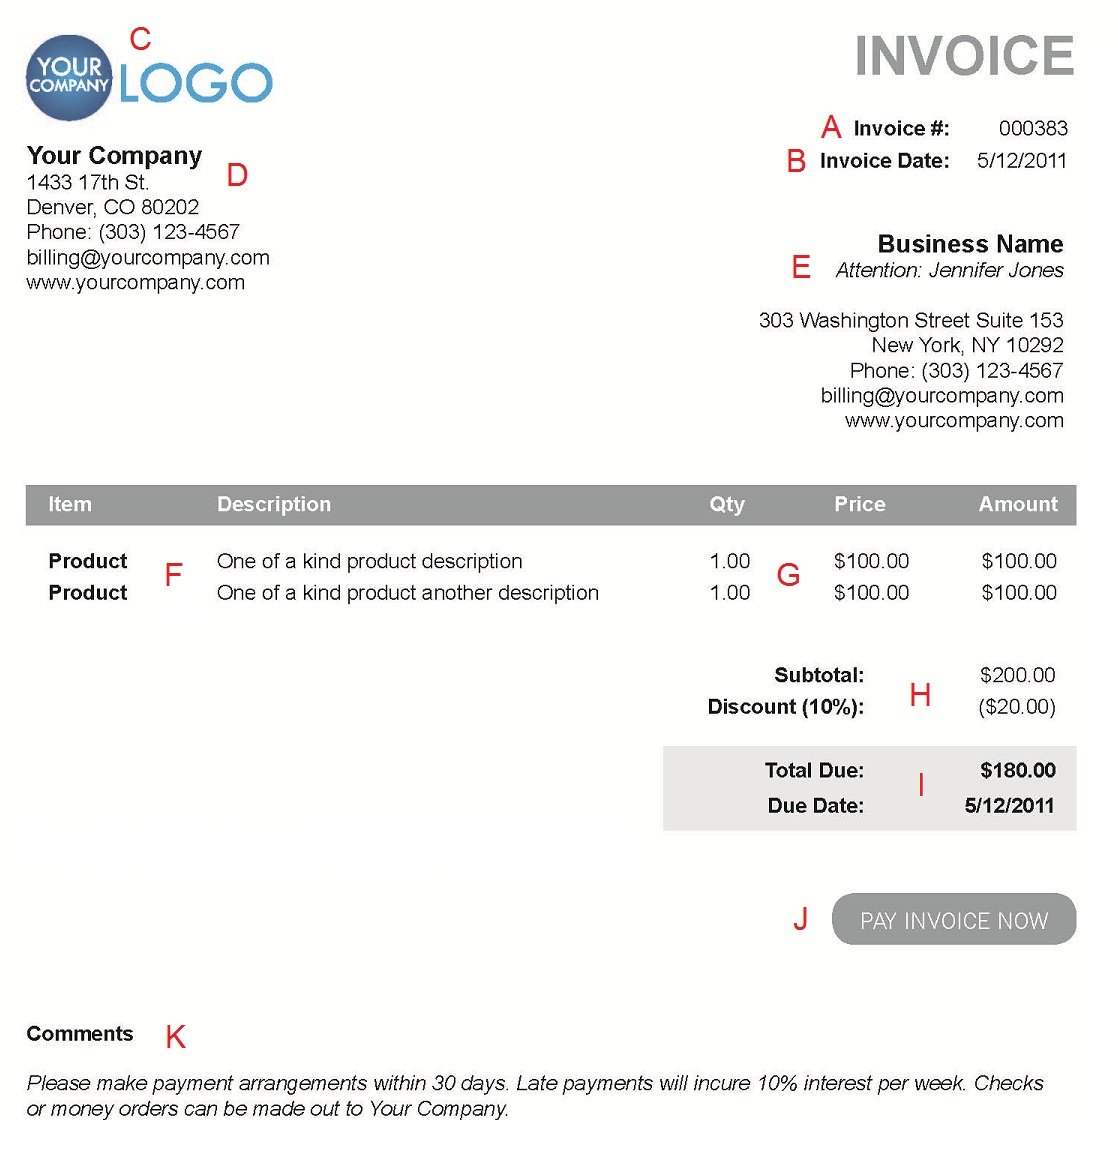 Opposenewapstandardsus  Scenic The  Different Sections Of An Electronic Payment Invoice With Exciting A  With Captivating Received Receipt Template Also Money Receipt Format Doc In Addition Receipt Of Rent Payment Template And Free Receipt Organizer Software As Well As Rental Receipts Template Additionally Hotel Bill Receipt From Paysimplecom With Opposenewapstandardsus  Exciting The  Different Sections Of An Electronic Payment Invoice With Captivating A  And Scenic Received Receipt Template Also Money Receipt Format Doc In Addition Receipt Of Rent Payment Template From Paysimplecom